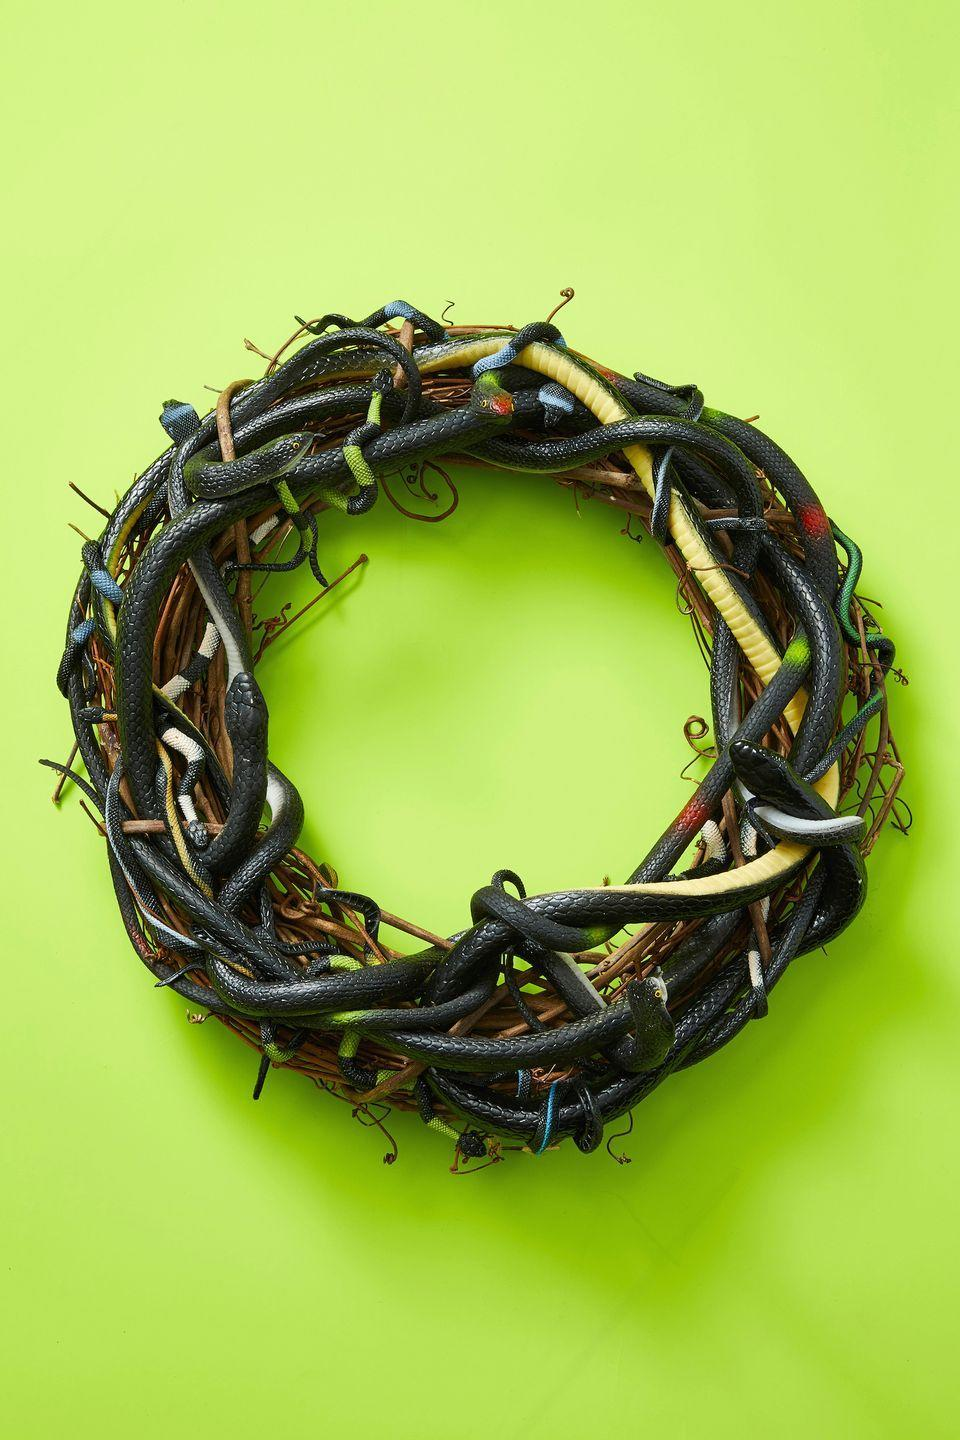 """<p>Spook the neighbors with this snake-laden wreath. To make it, weave plastic snakes, from large to small, between the wreath's twigs, repeating until you use all of the rubber snakes. Use hot glue as needed to attach them to the wreath. </p><p><a class=""""link rapid-noclick-resp"""" href=""""https://www.amazon.com/Fun-Central-Rubber-Snakes-Garden/dp/B01C4OTKAU/?tag=syn-yahoo-20&ascsubtag=%5Bartid%7C10055.g.421%5Bsrc%7Cyahoo-us"""" rel=""""nofollow noopener"""" target=""""_blank"""" data-ylk=""""slk:SHOP RUBBER SNAKES"""">SHOP RUBBER SNAKES</a></p><p><strong>RELATED:</strong> <a href=""""https://www.goodhousekeeping.com/holidays/halloween-ideas/g79/diy-halloween-wreaths/"""" rel=""""nofollow noopener"""" target=""""_blank"""" data-ylk=""""slk:The Best Halloween Wreaths to DIY"""" class=""""link rapid-noclick-resp"""">The Best Halloween Wreaths to DIY</a></p>"""